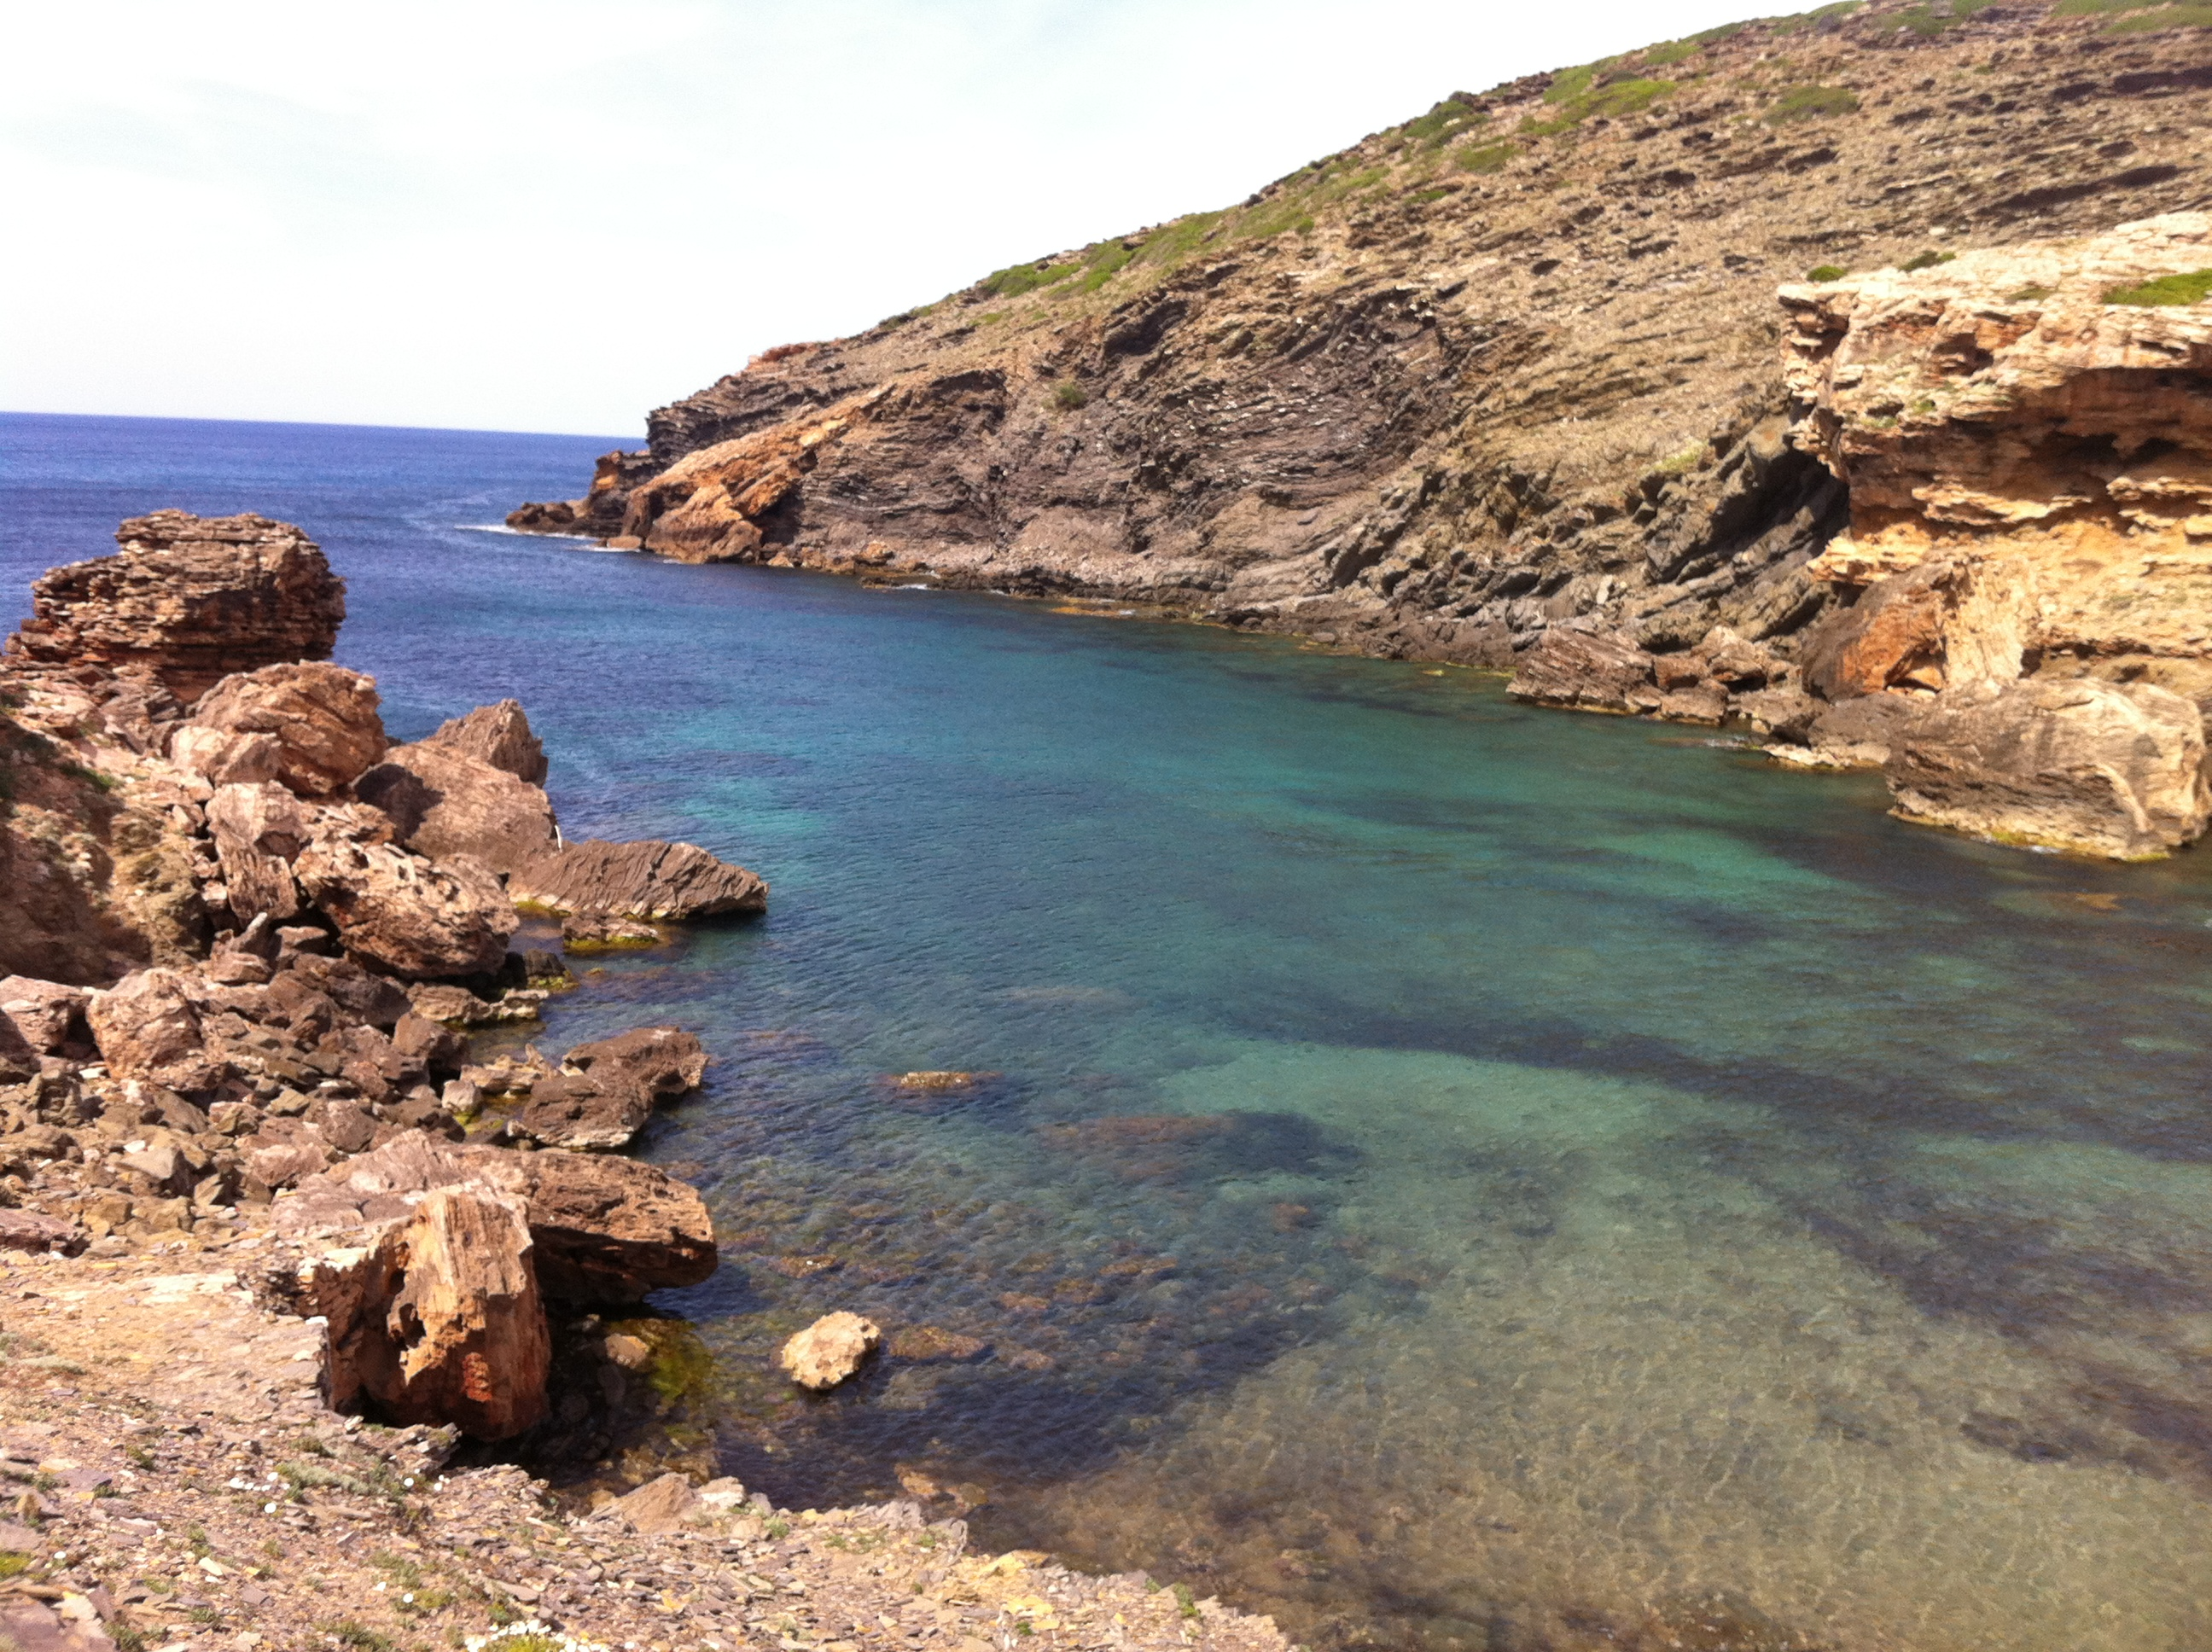 IMG 5093 - Four must-visit beaches in Menorca that do not feature in all the guides